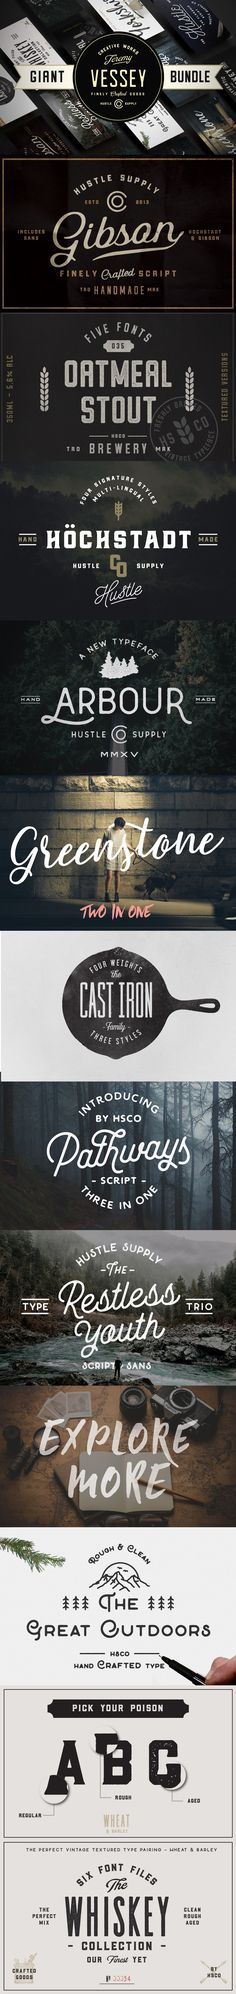 Ridiculous font bundle. 50+ vintage, retro, script and hip fonts. #fontbundle, #vintagefontbundle, #retrofontbundle, #whiskey, #outdoors, #beer, #label, #aged